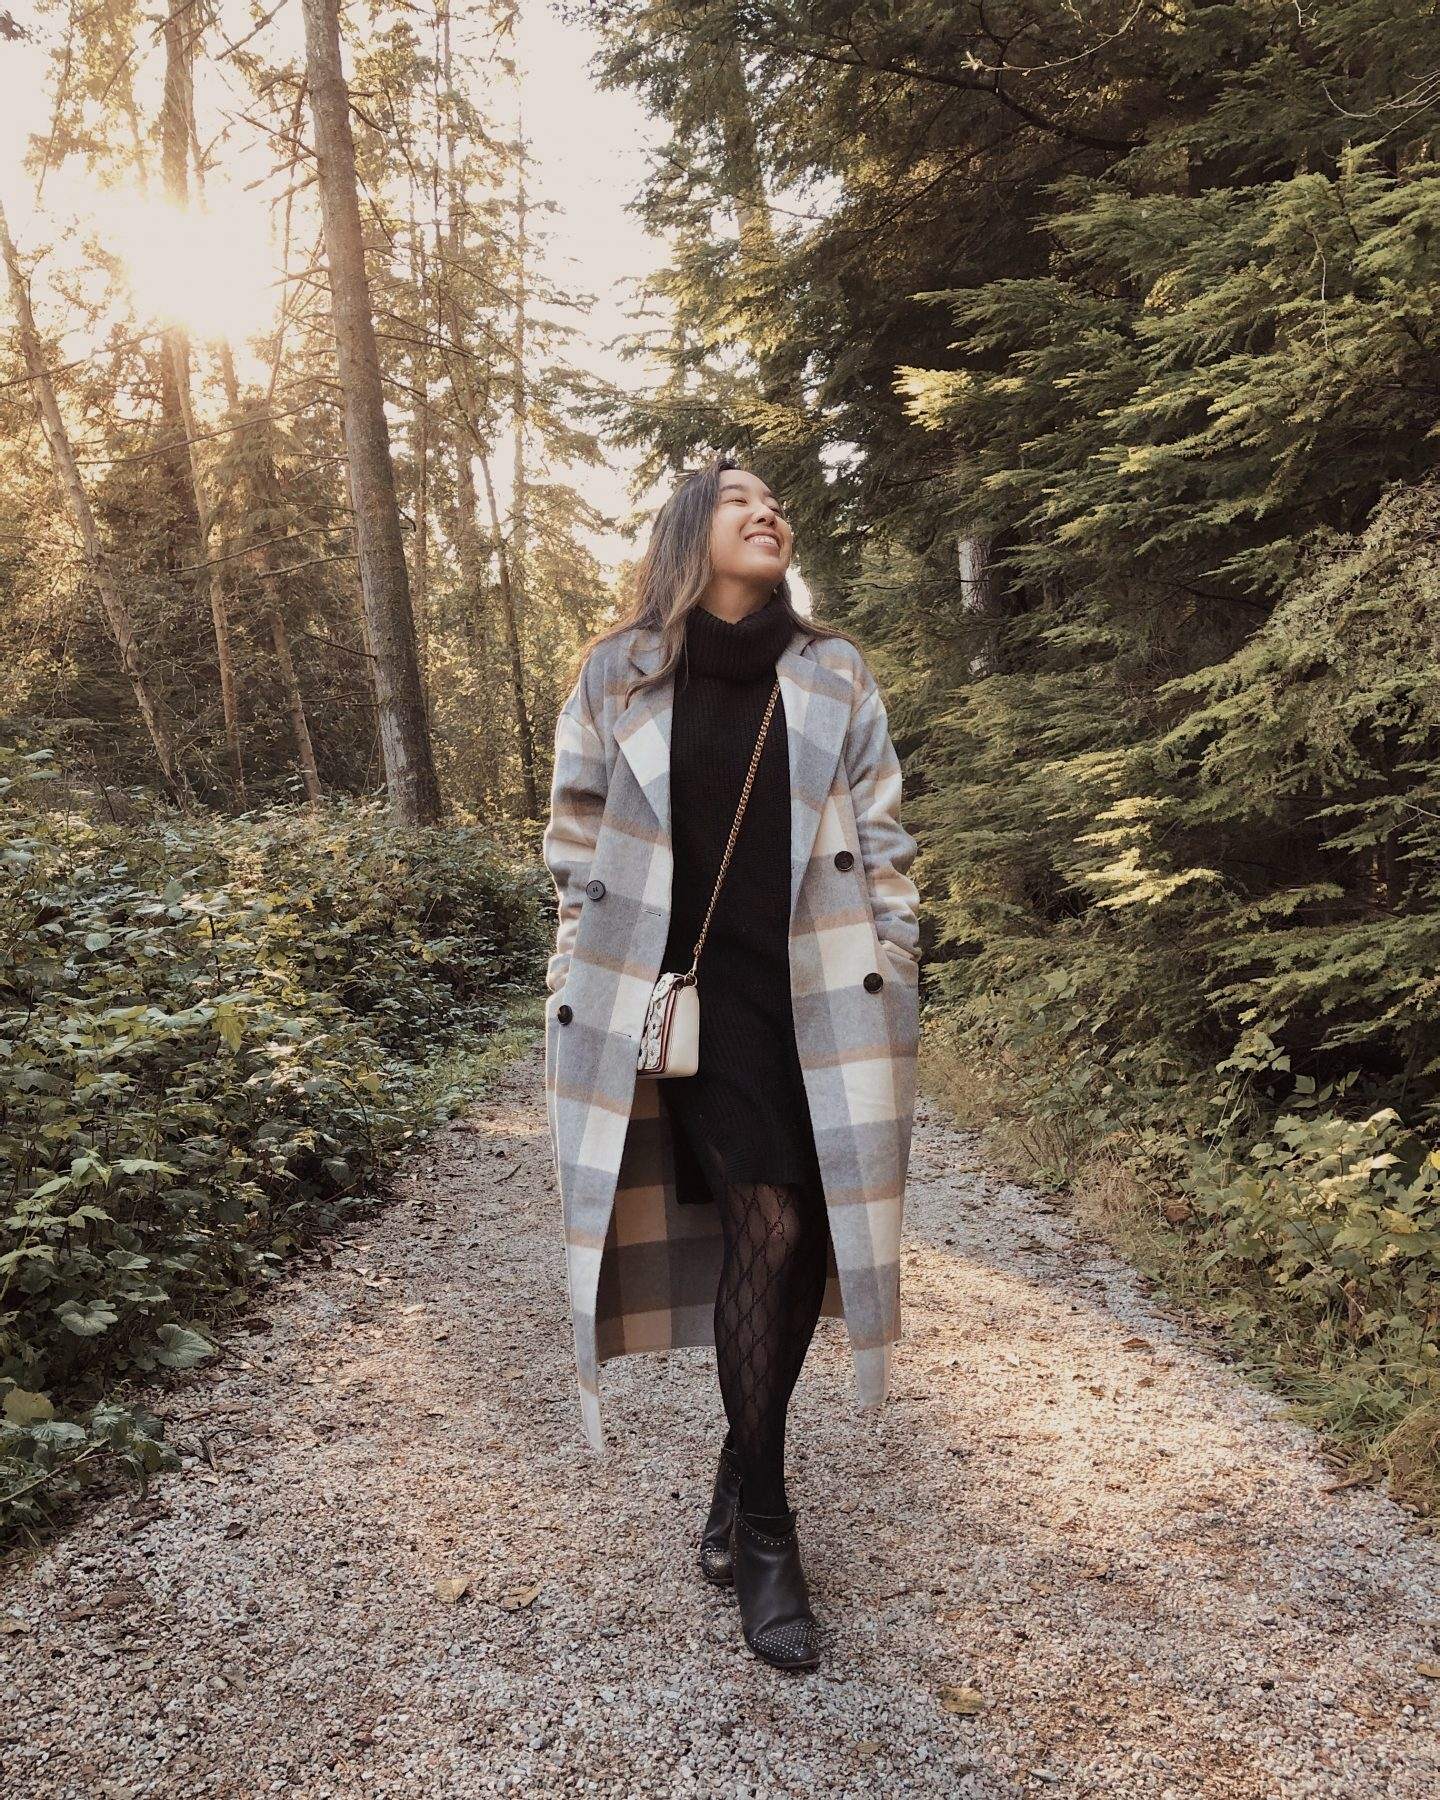 Strolling through the forest in the fall with my plaid jacket